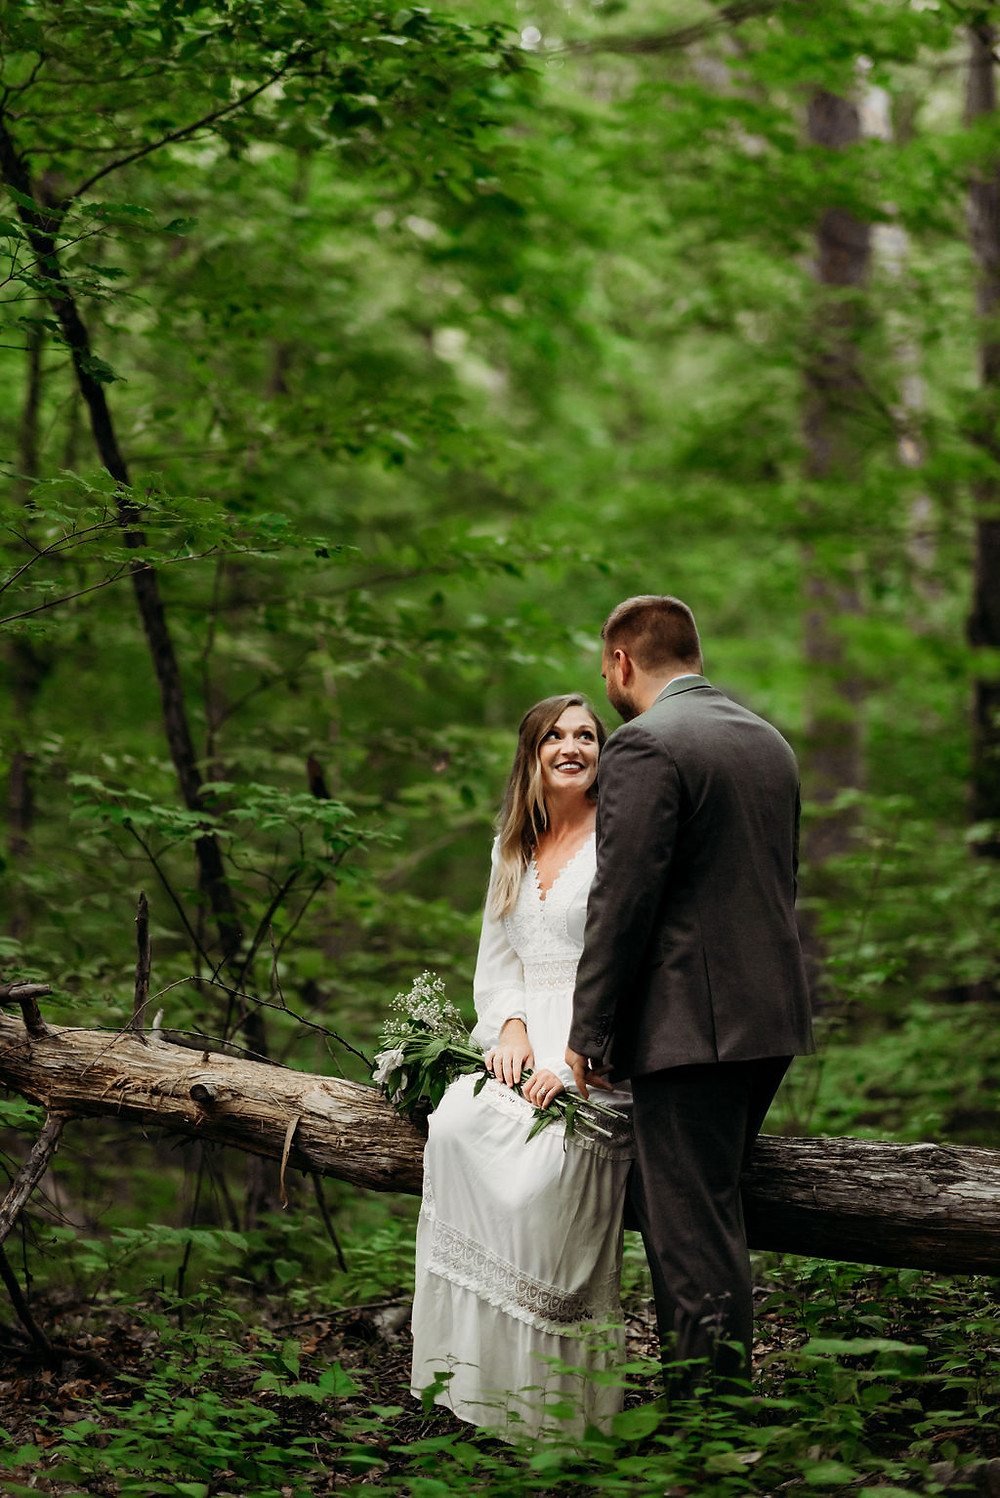 bride sitting down on a fallen tree trunk. groom stands next to her. they look into each other's eyes.